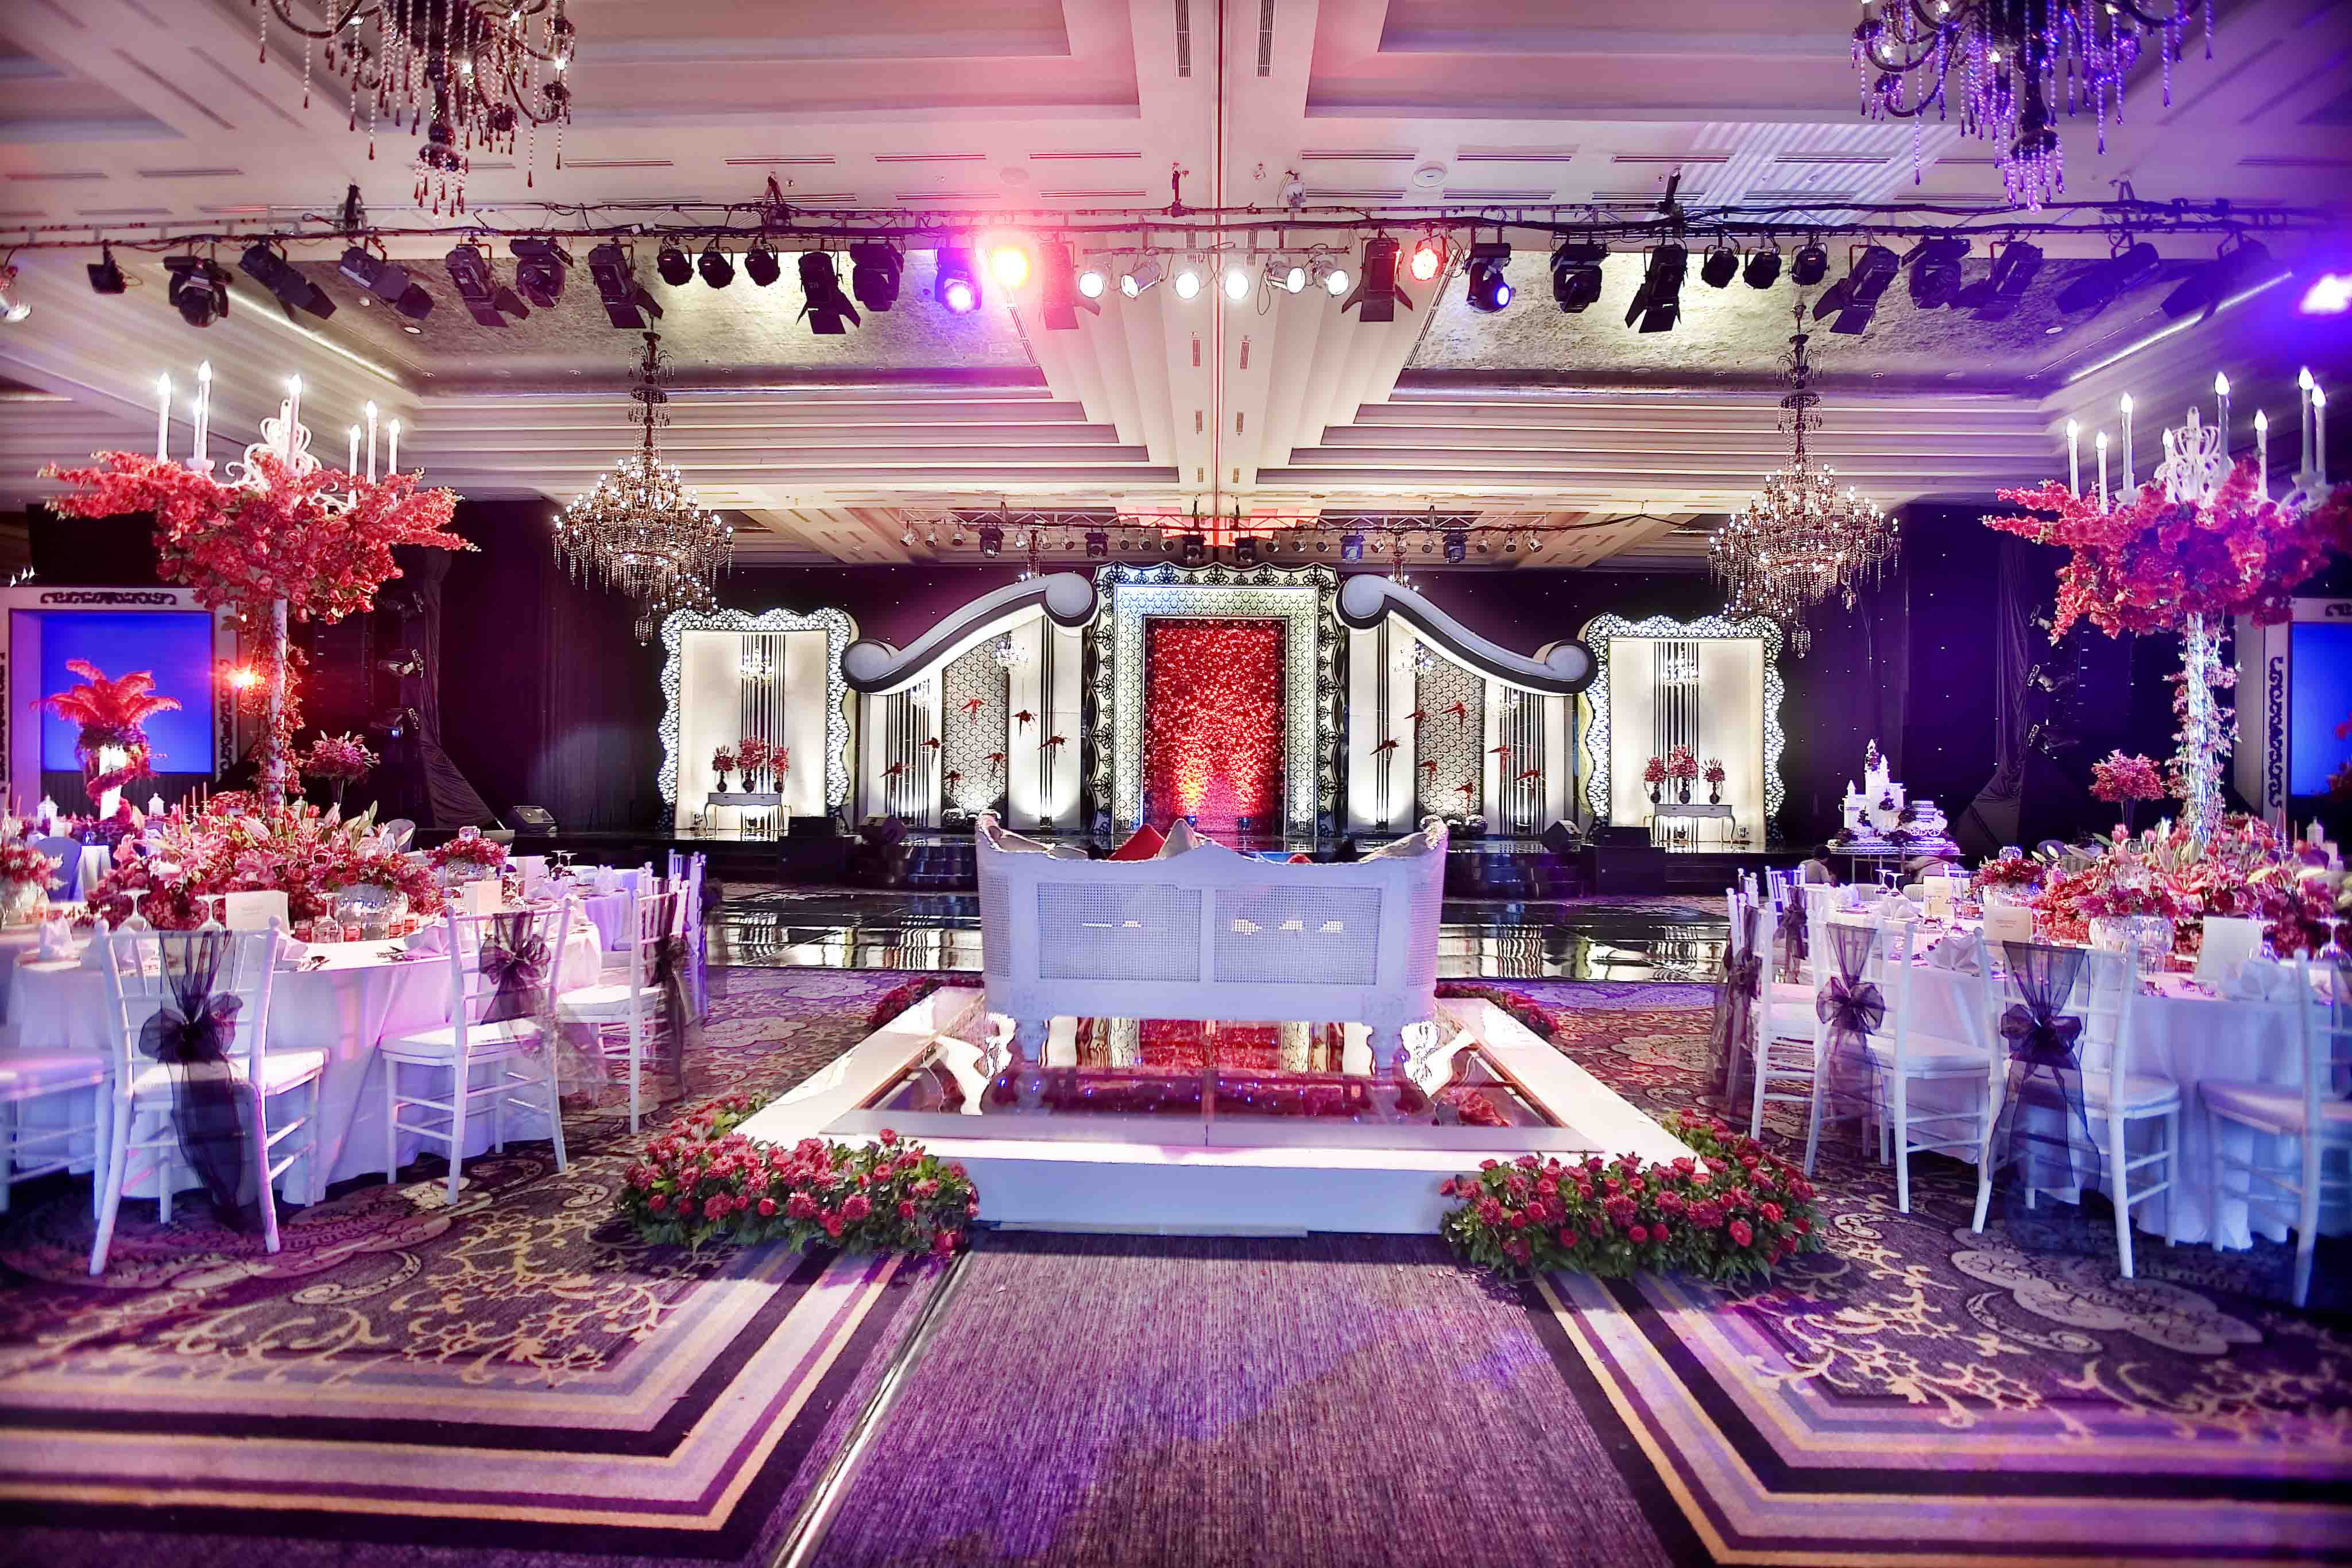 Vica decoration lightworks page 3 kiran and anoop wedding decoration by vica decor located in grand ballroom kempinski junglespirit Image collections